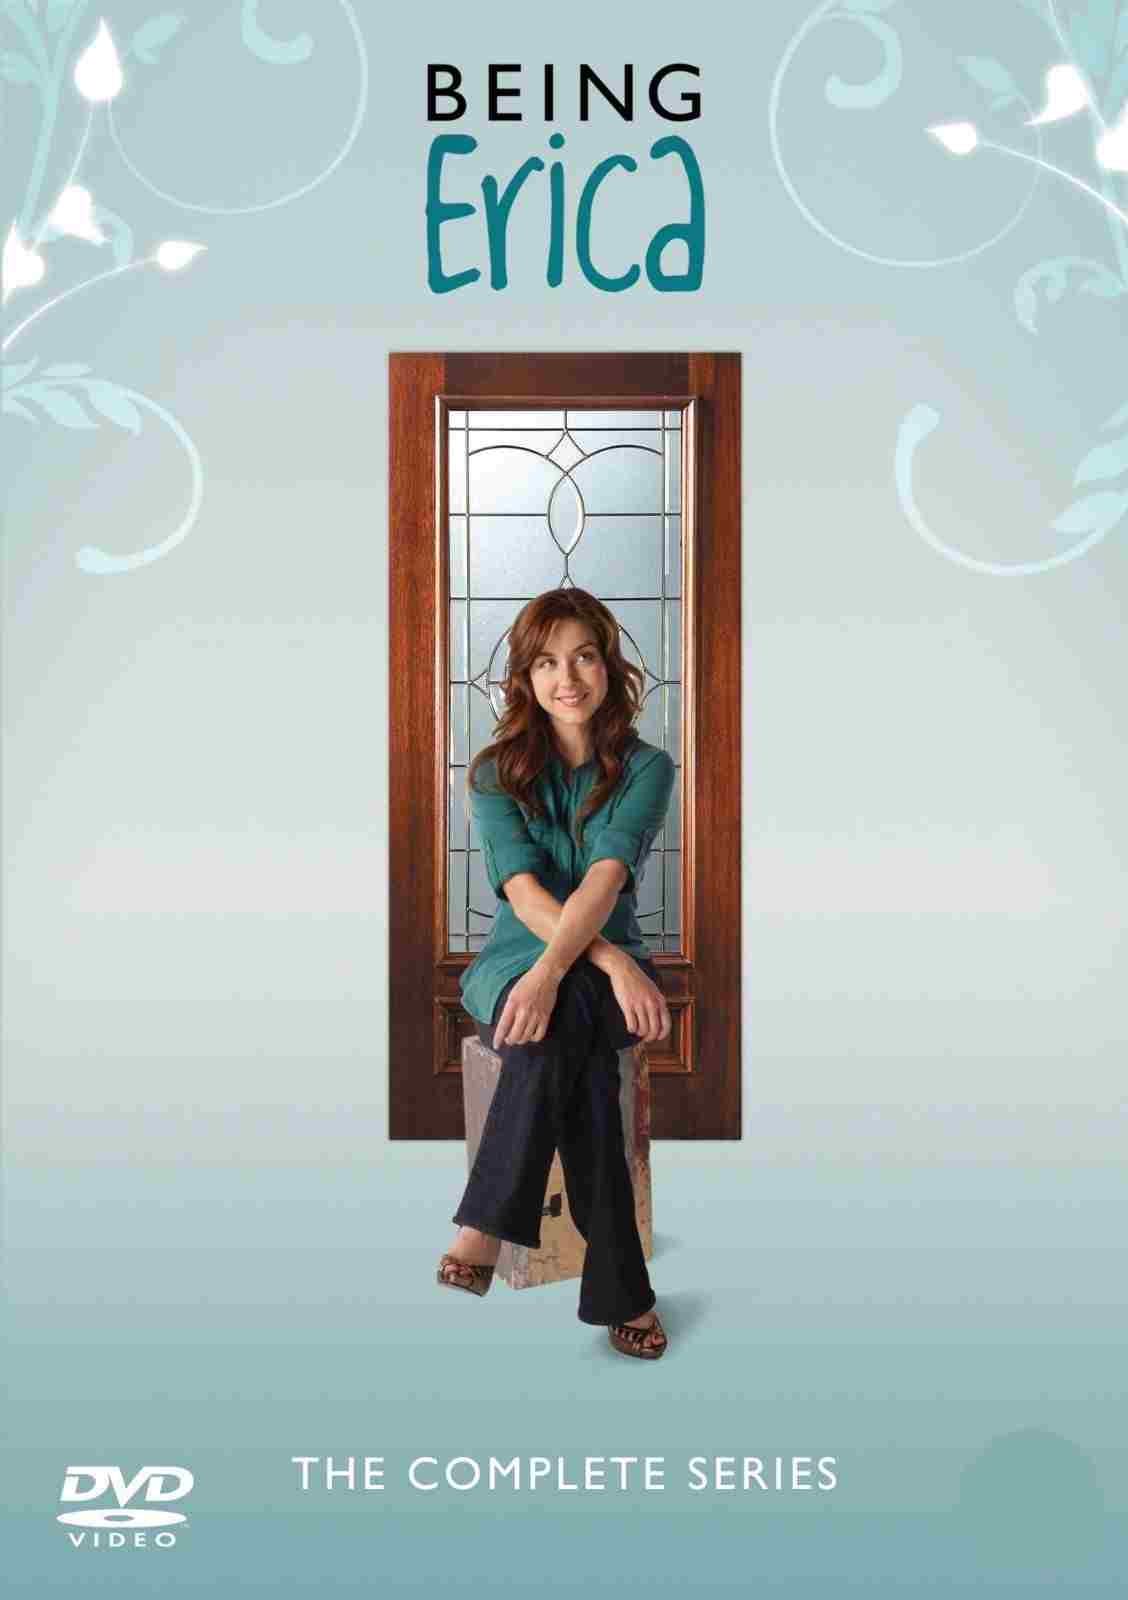 Being Erica Season One,Two,Three,Four 1,2,3,4 Complete Series (12-Disc Set) USA RETAIL